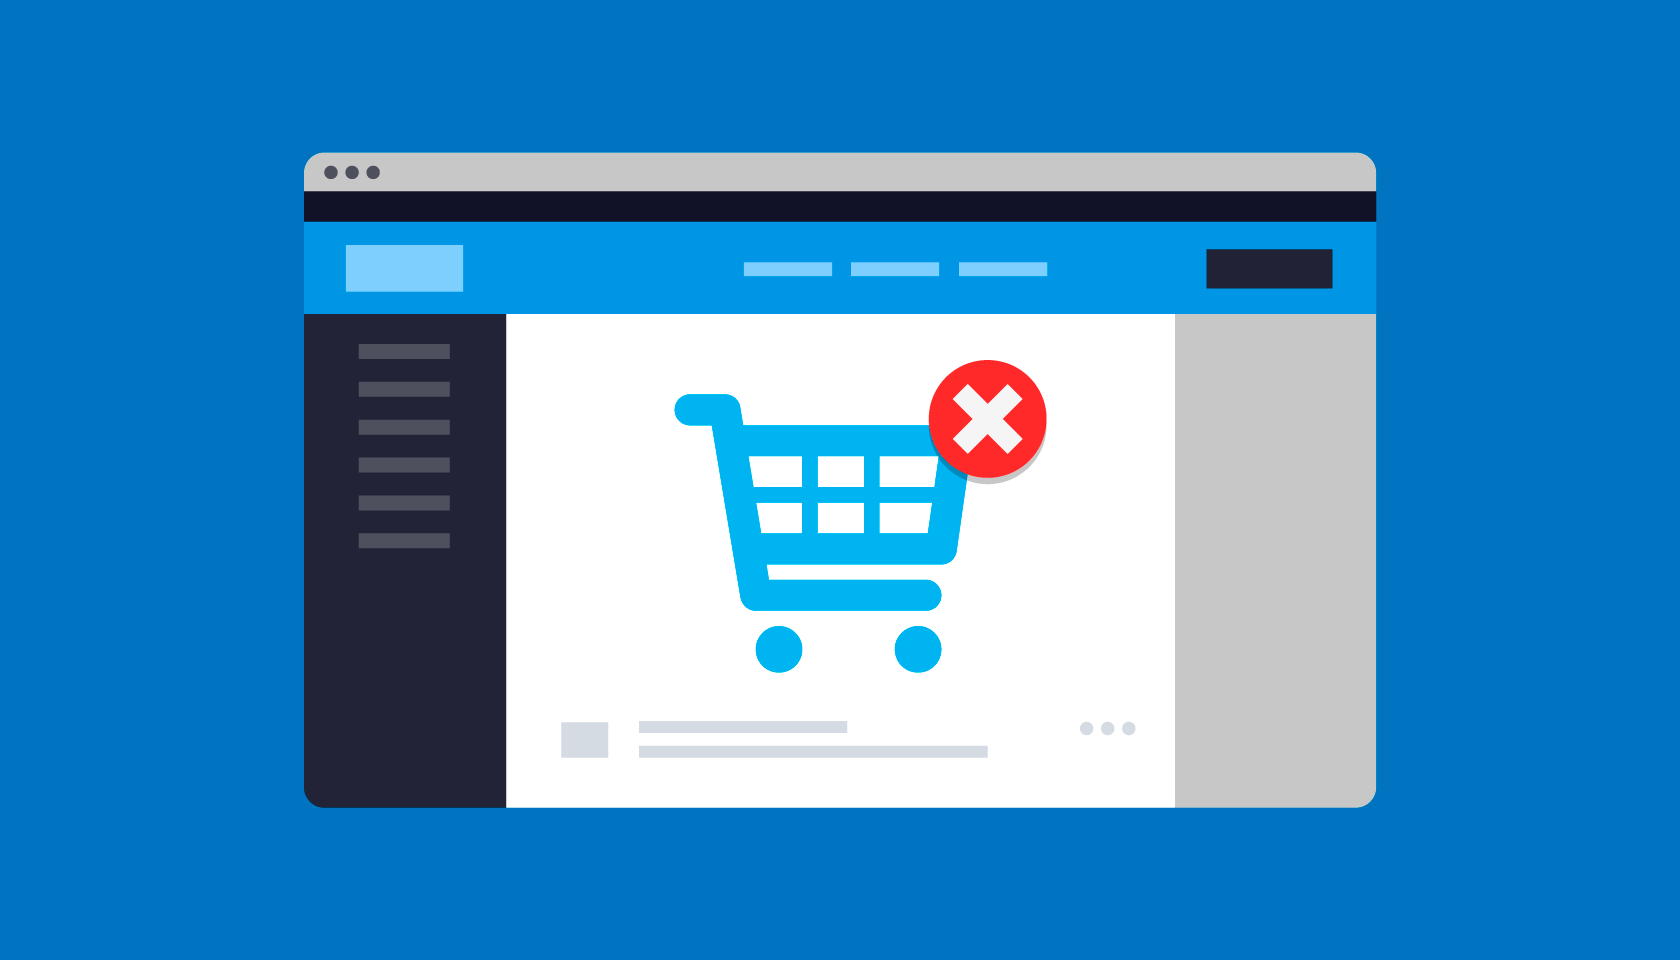 ecommerce, Design Guide: Here's How Your eCommerce Website Could Go Really Wrong